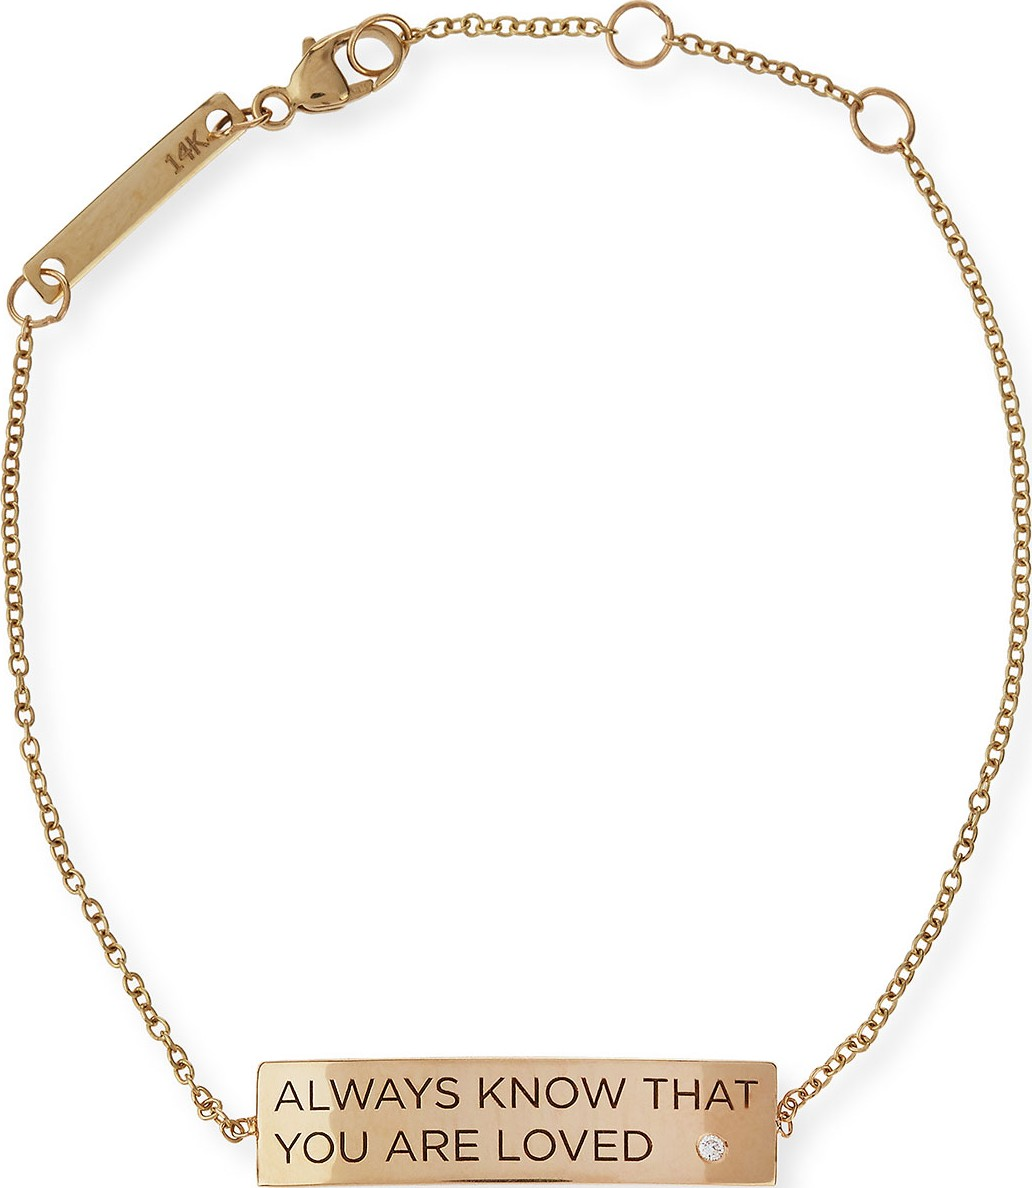 450fc0635b41a Zoe Chicco Always Know That You Are Loved 14K Gold ID Bracelet with Diamond